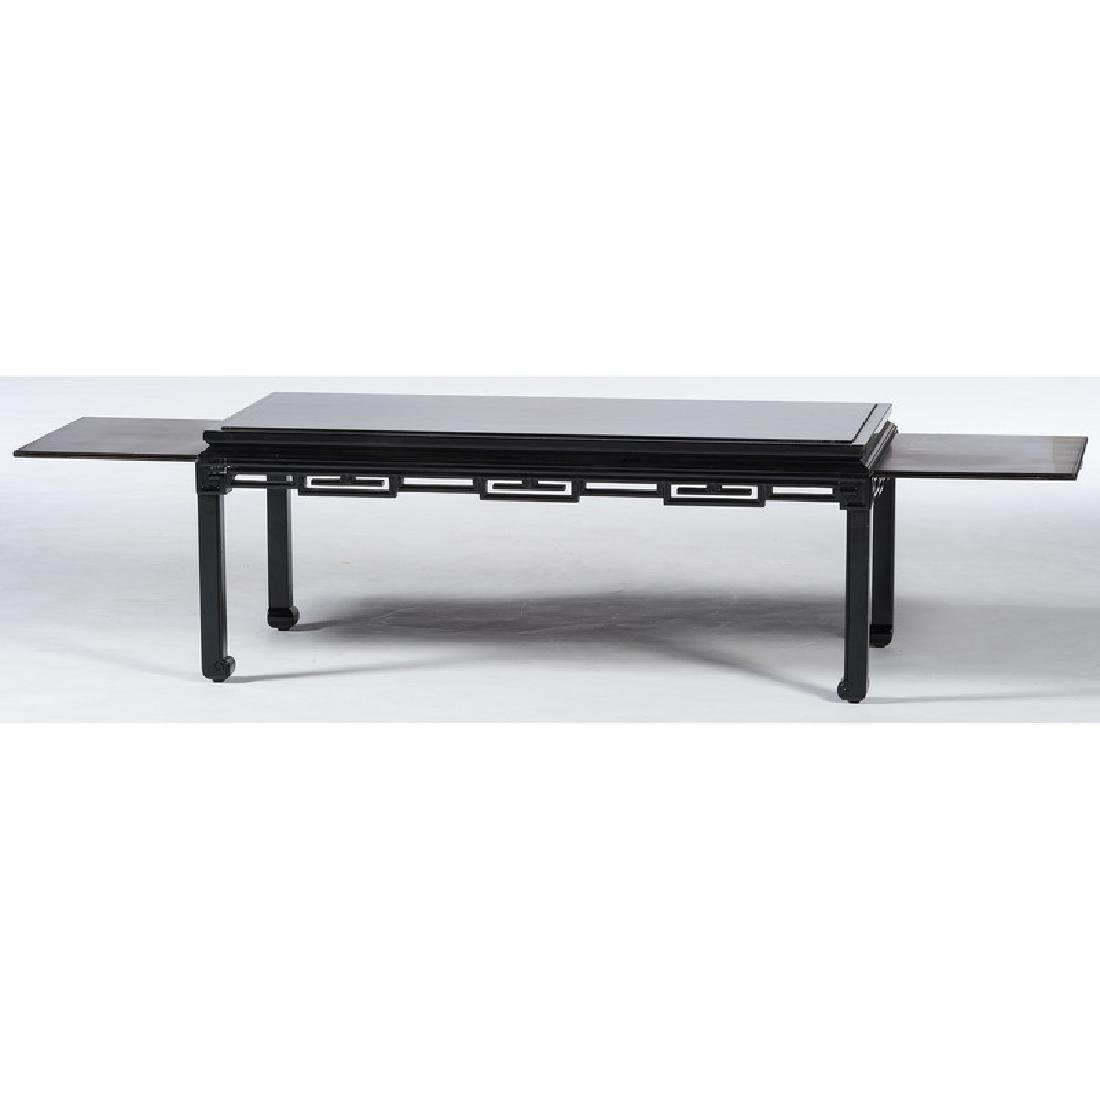 Chinese-style Coffee Table - 2